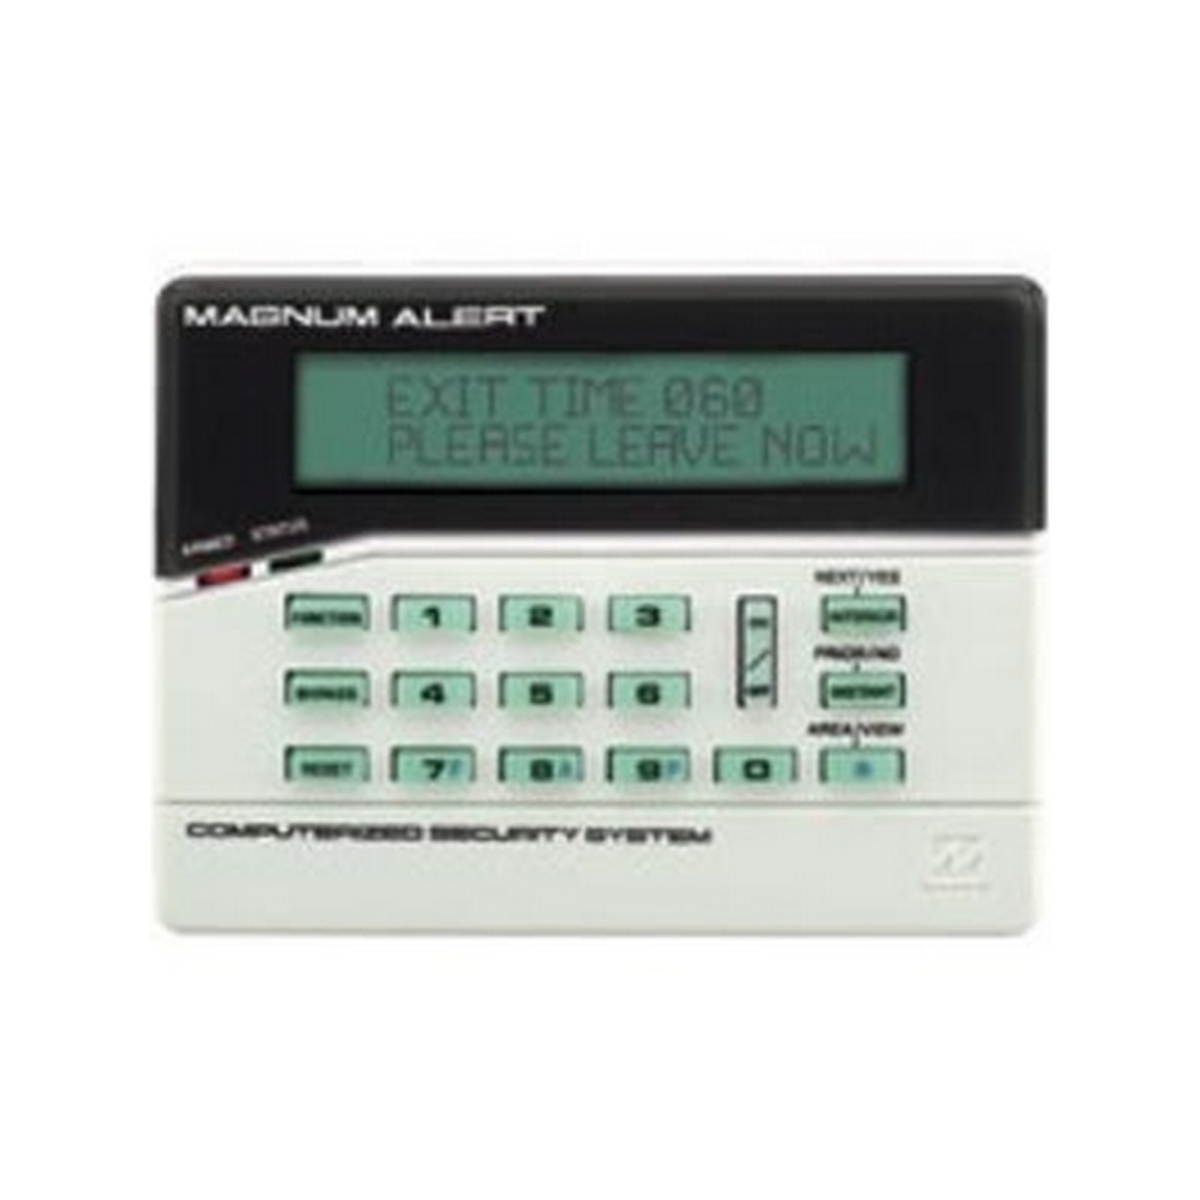 Napco RP3000LCDE Dual line LCD keypad for Magnum alert panel